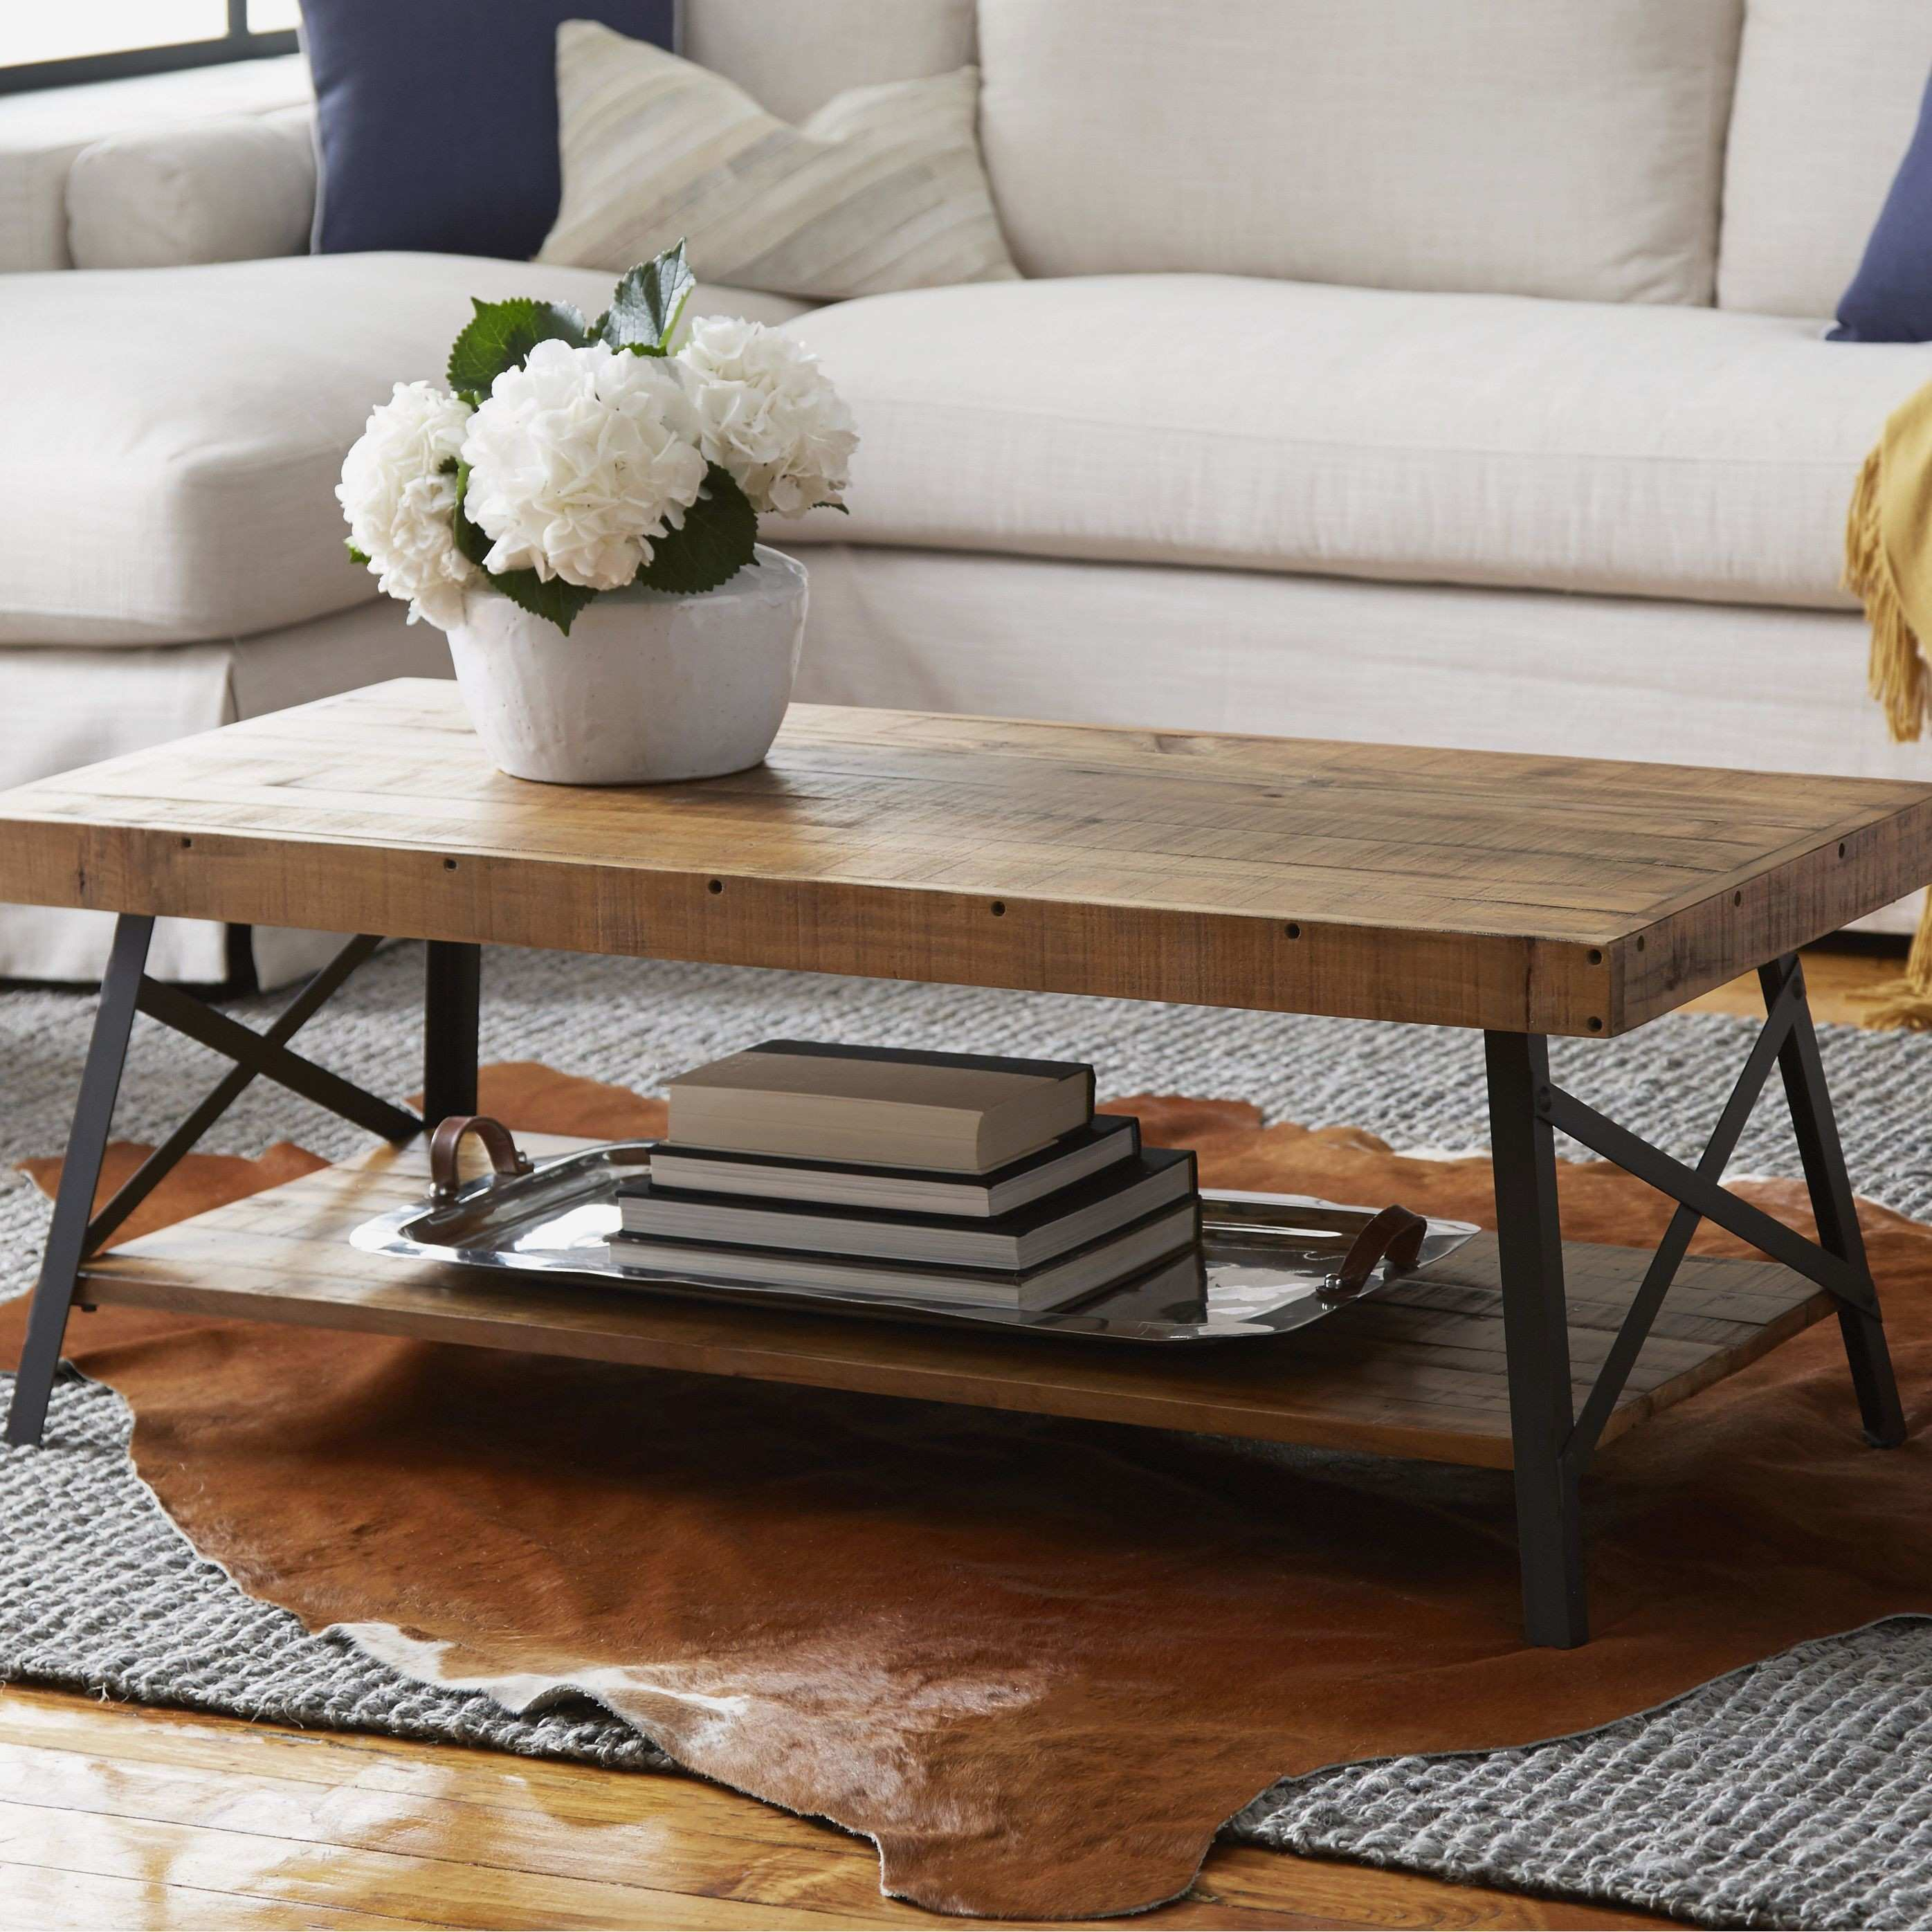 Furniture 32 Coffee Table Decor Ideas The Most Amazing Kitchen